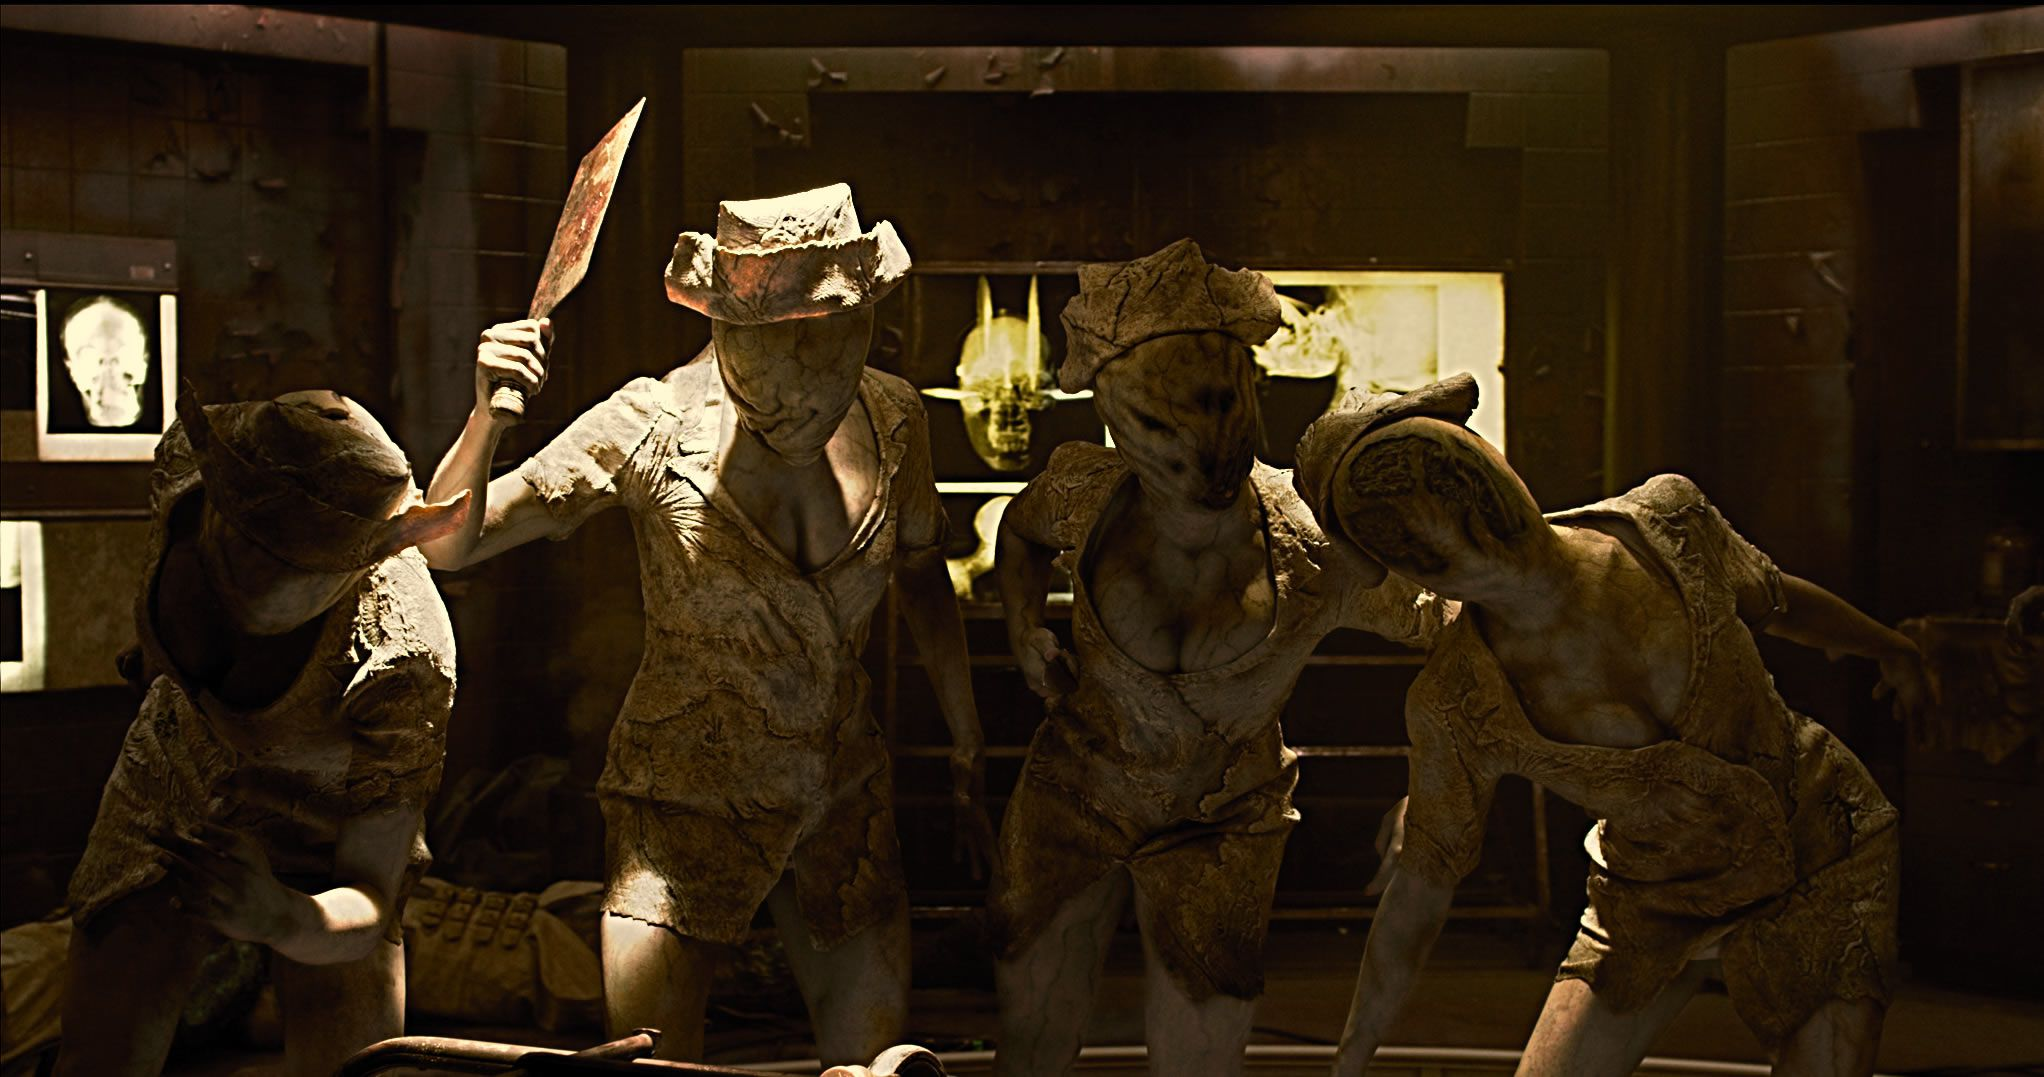 An image from Silent Hill: Revelation